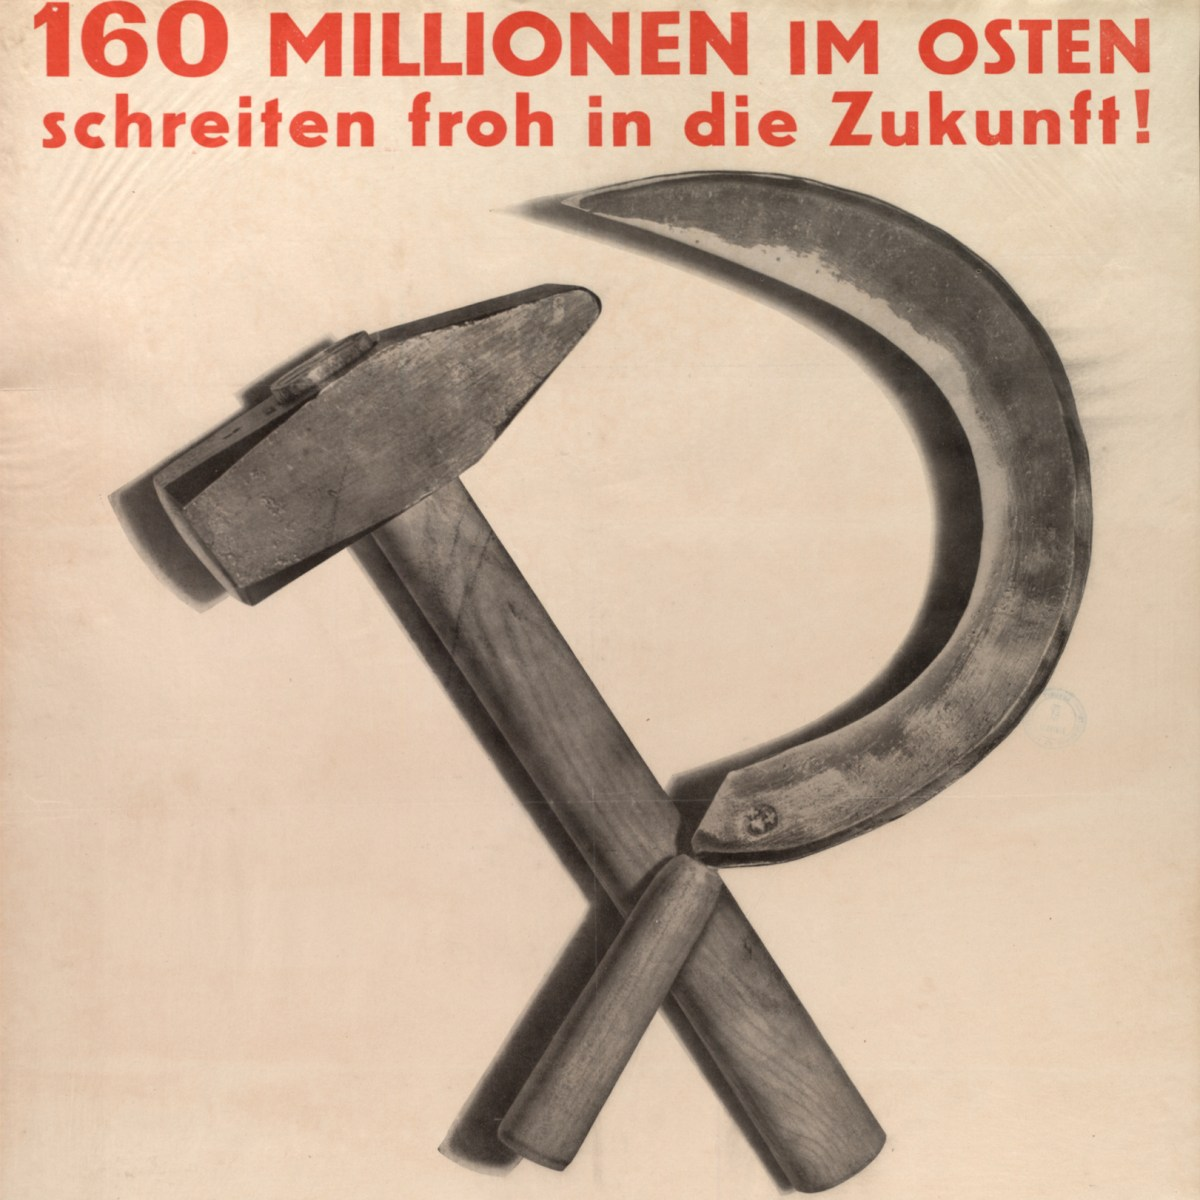 German interwar communist posters